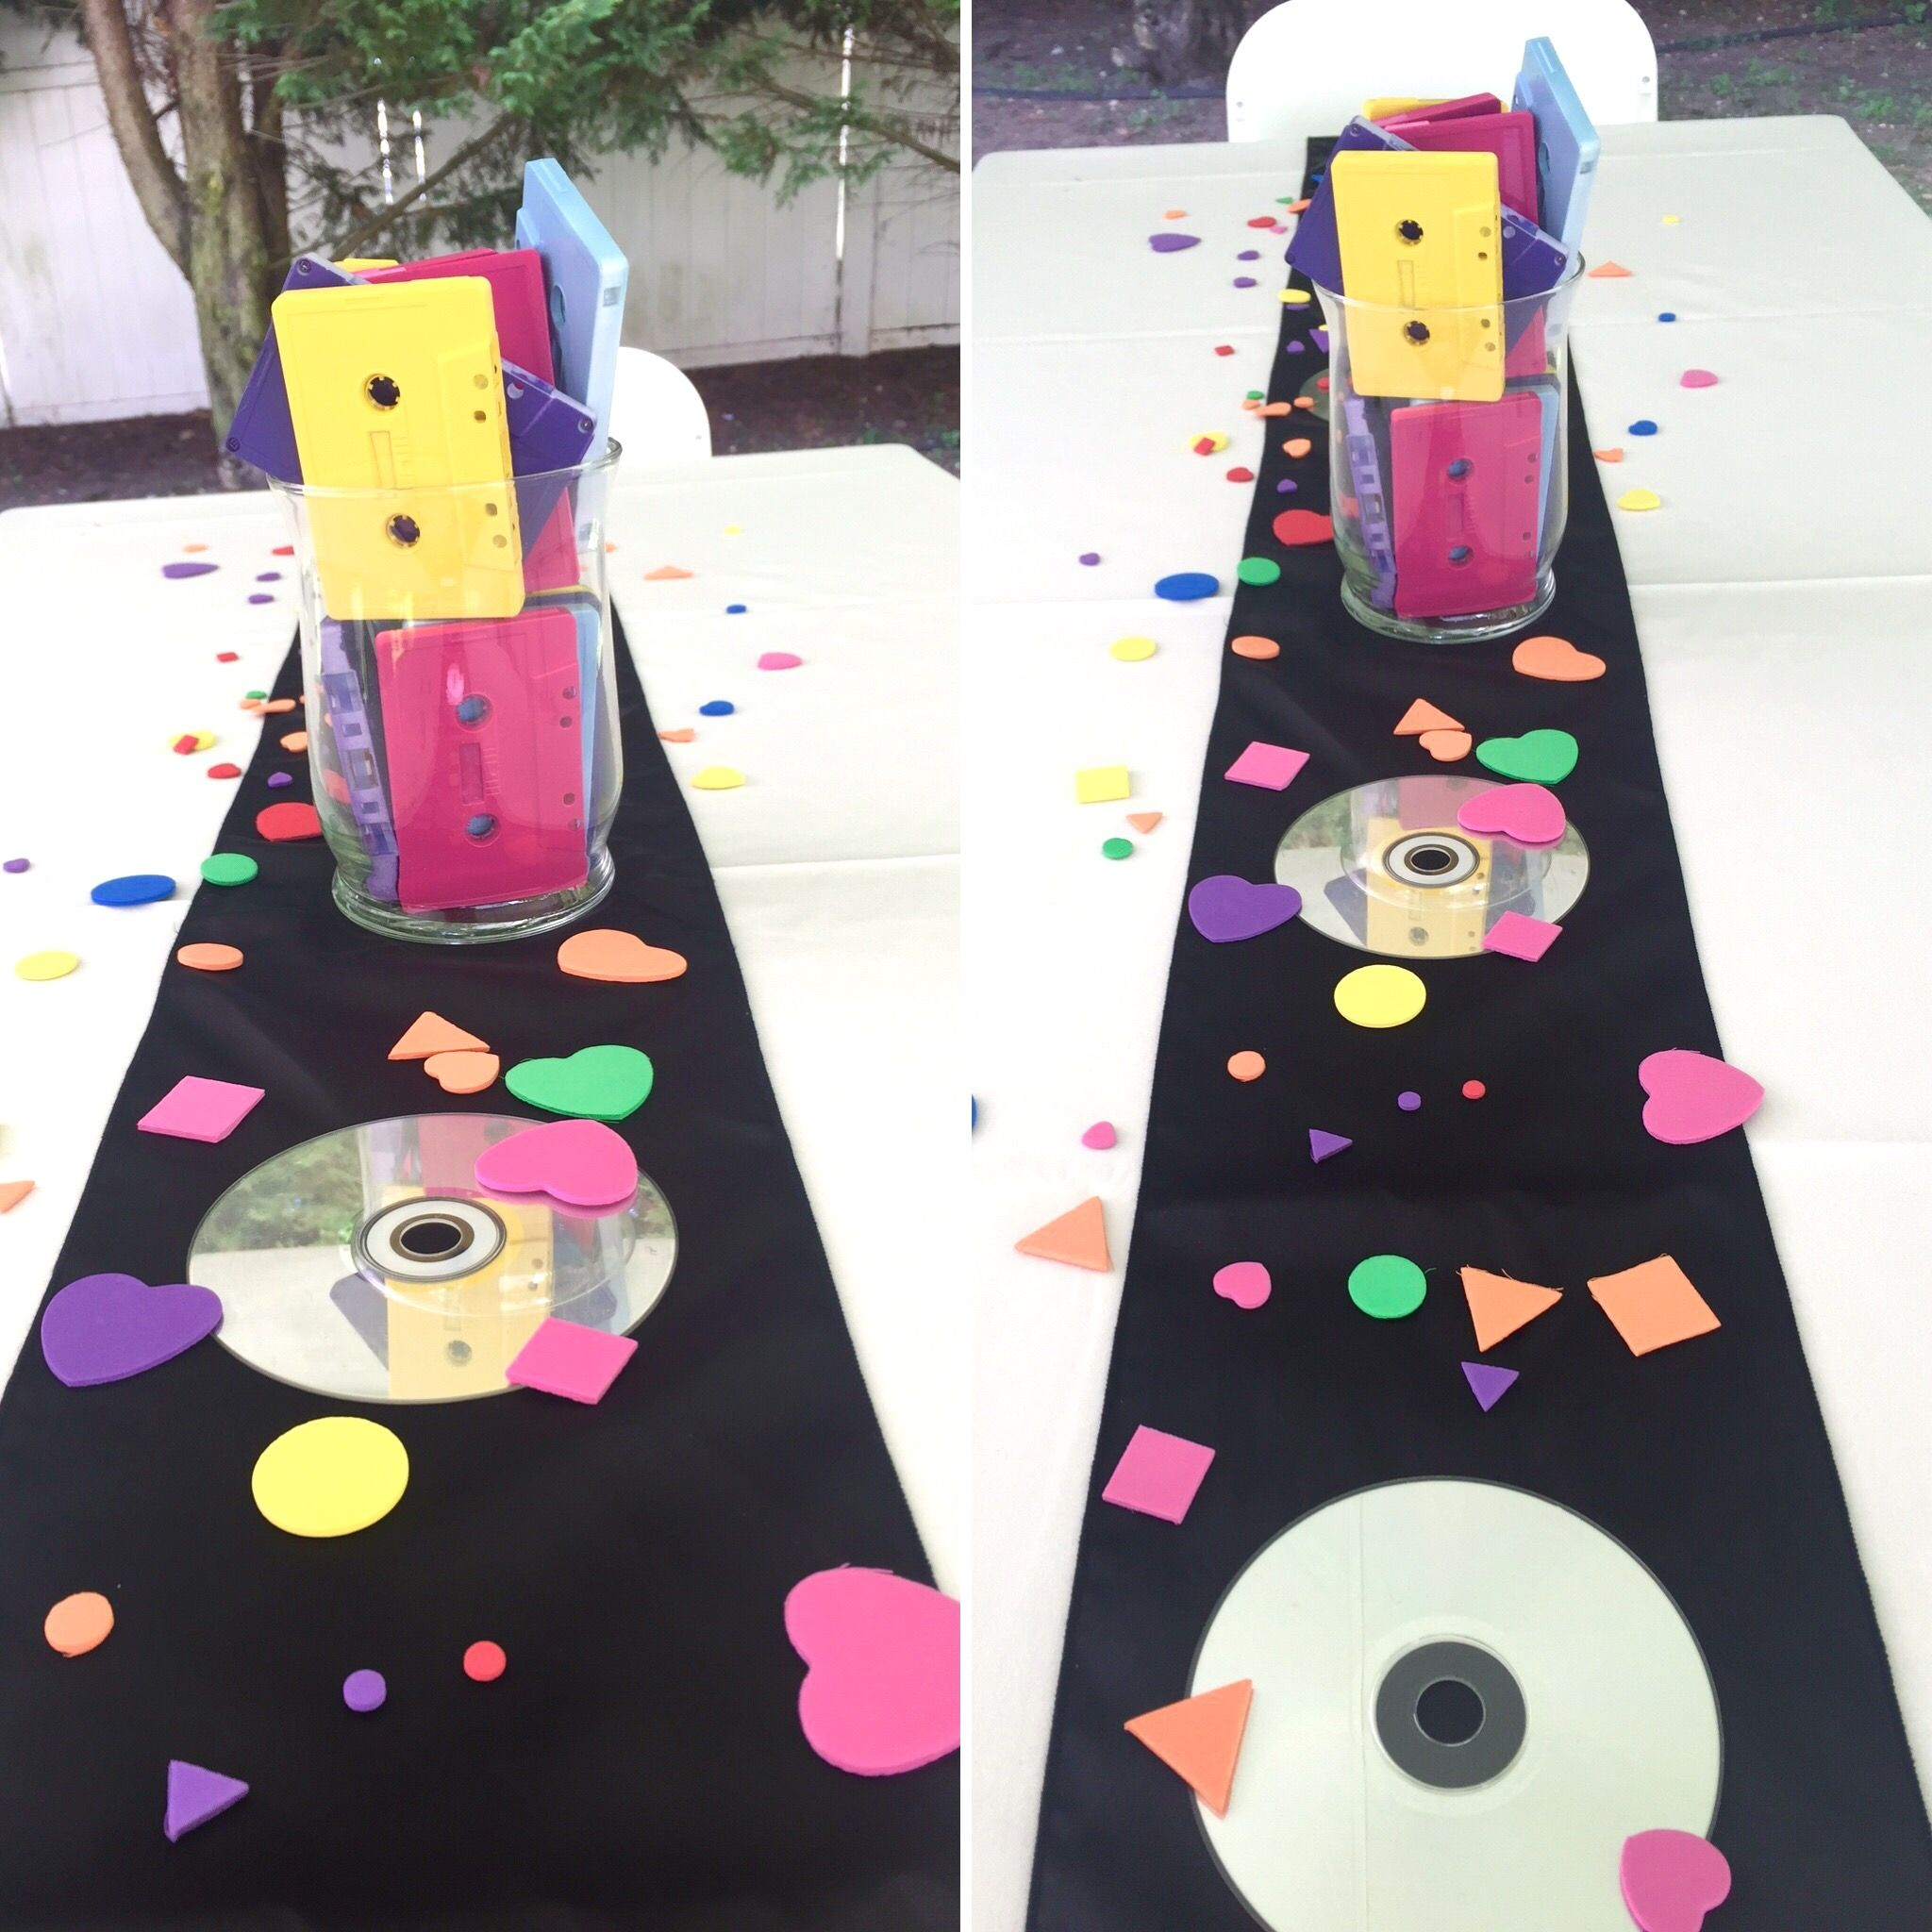 90 s theme party party centerpieces dj photos and for Modern 90s house music